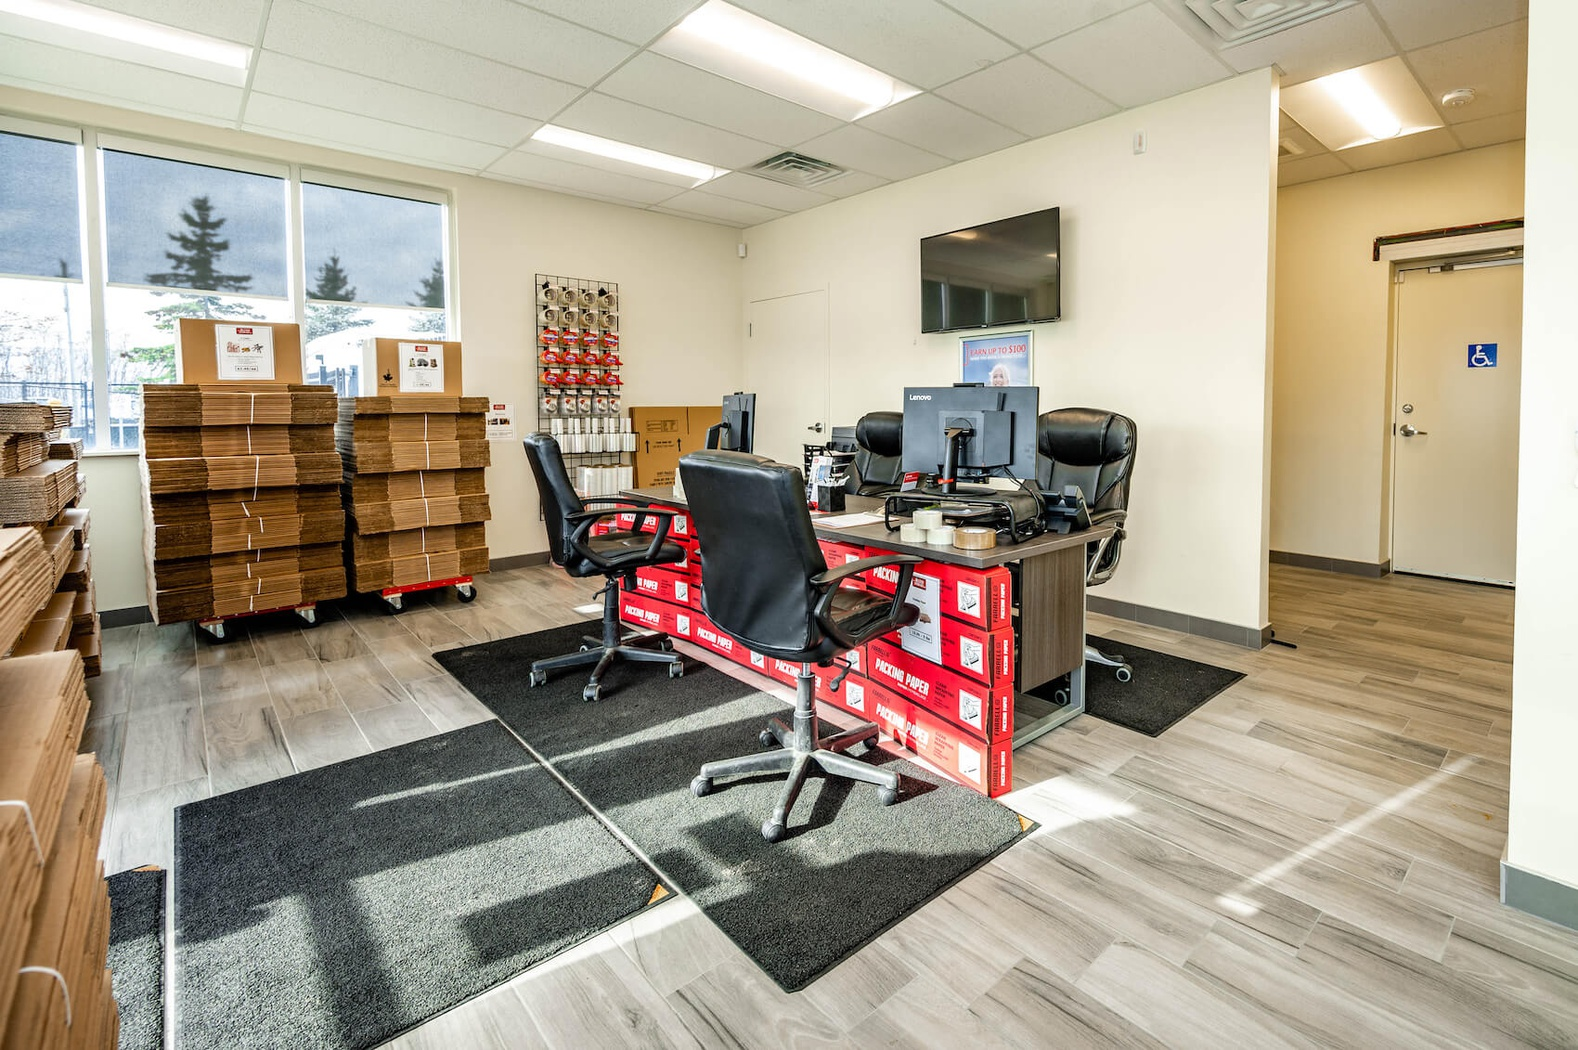 Rent Barrie storage units at 62 Caplan Ave. We offer a wide-range of affordable self storage units and your first 4 weeks are free!